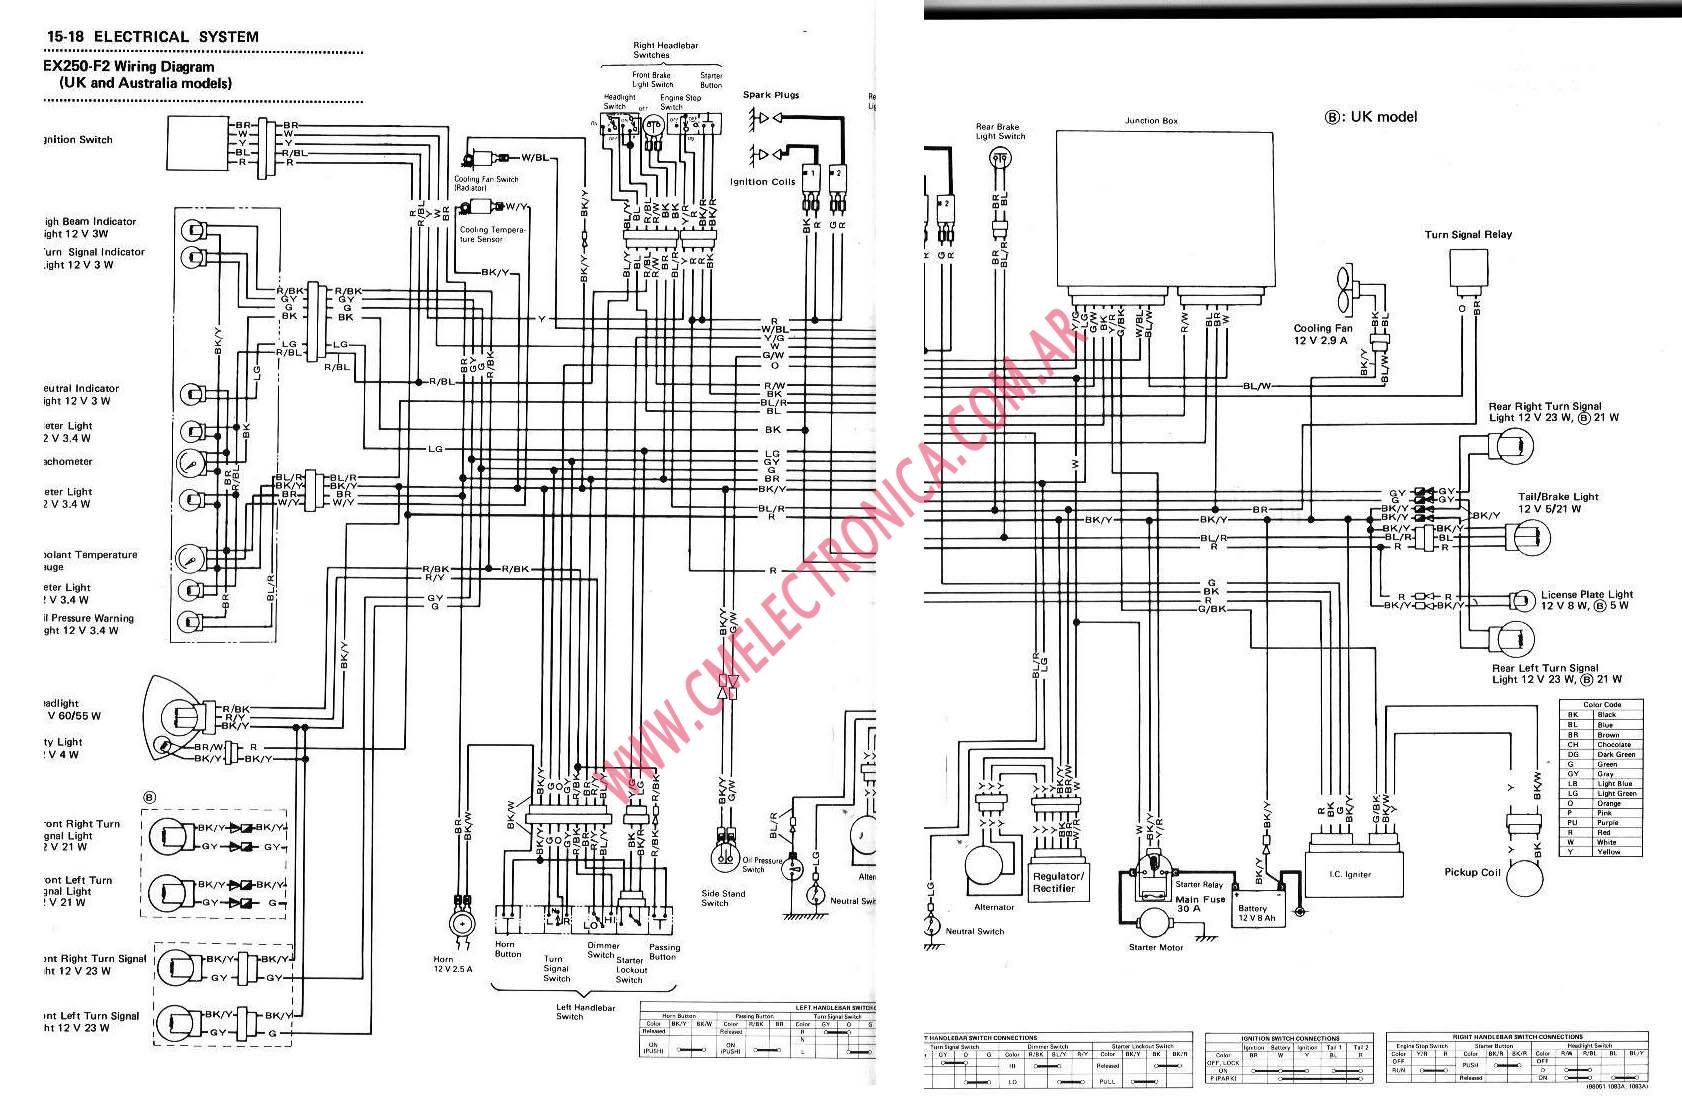 Kawasaki Gpx250 furthermore Kawasaki Mule Ignition Wiring Diagram likewise Parts besides Kawasaki Bayou 300 1995 Firecracker Red Un 94 Model moreover Motorcycle Wiring Harness Diagram. on wiring diagram ninja 250